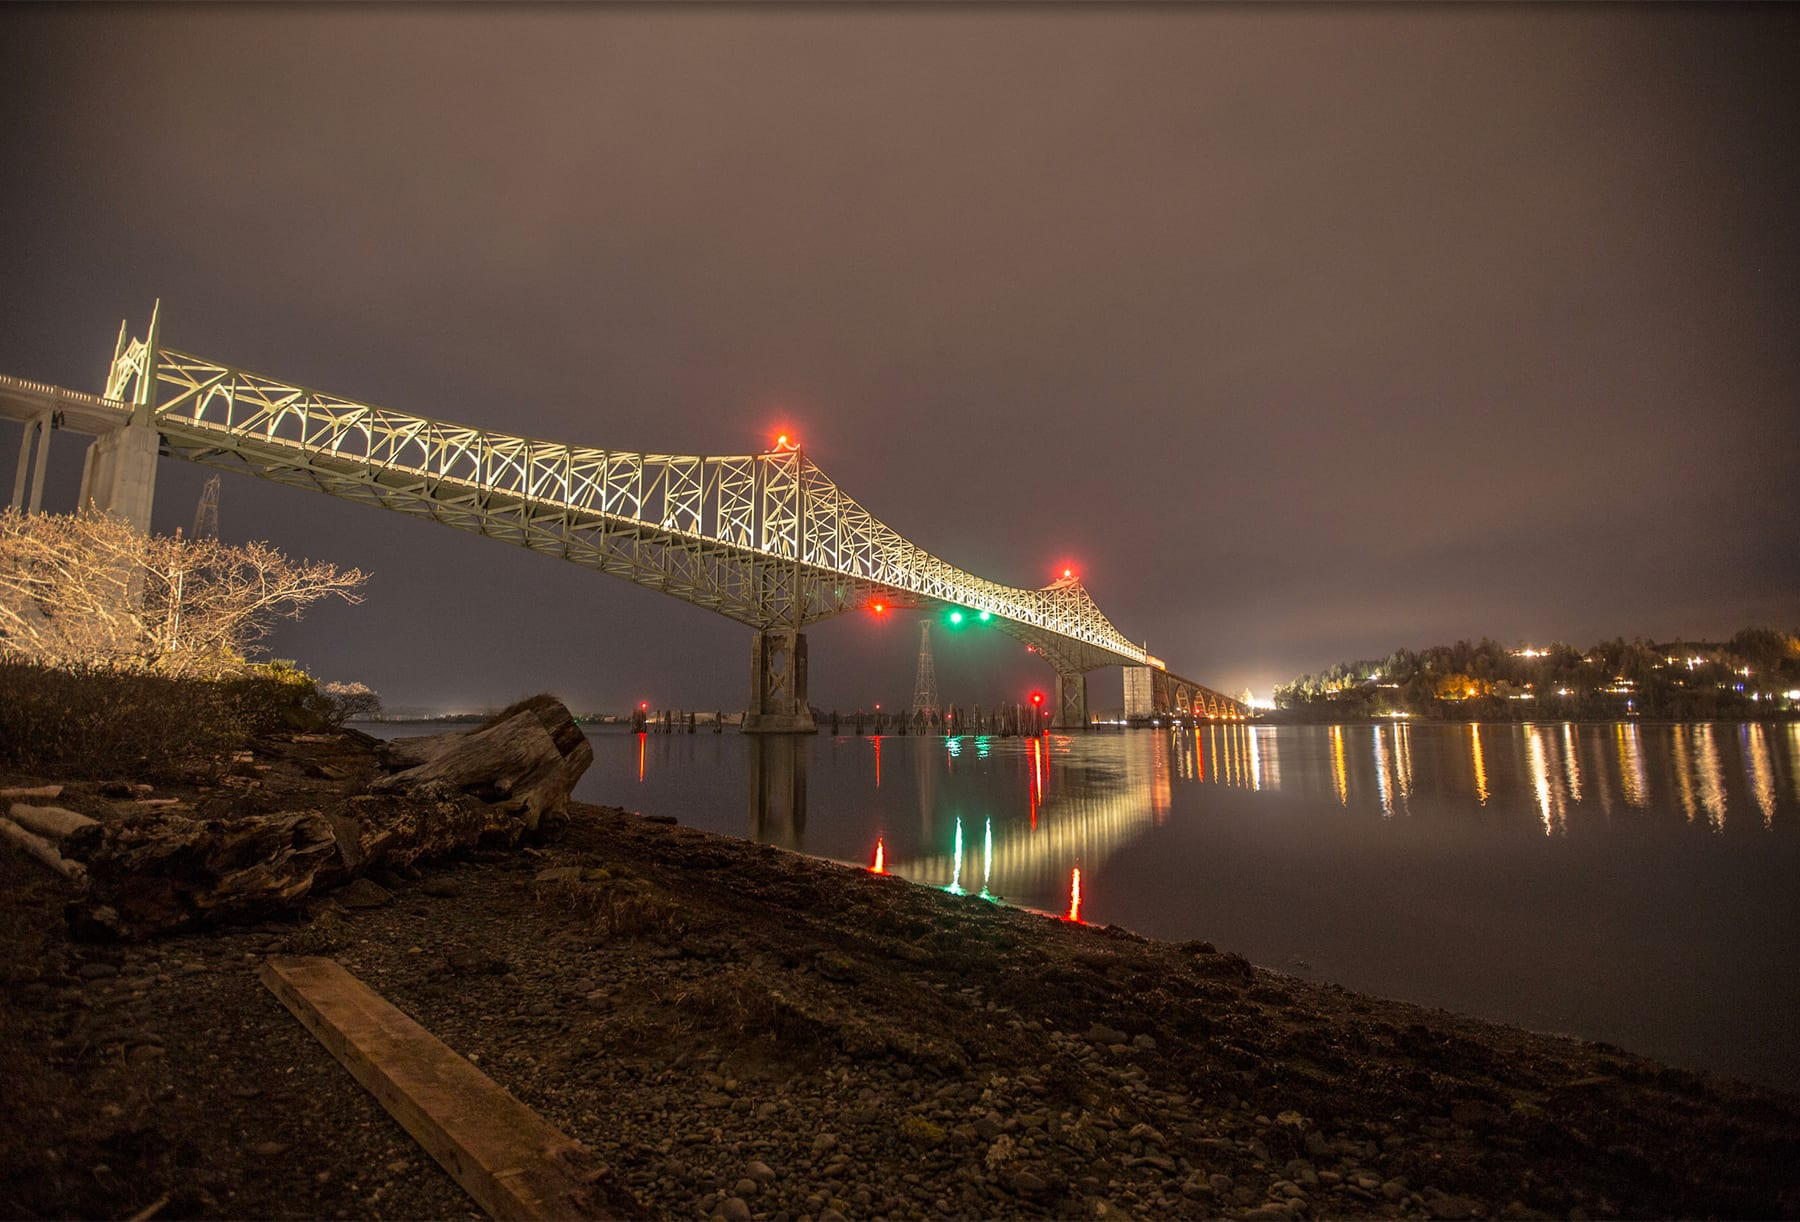 Picture of the historic McCullough bridge spanning across Coos Bay